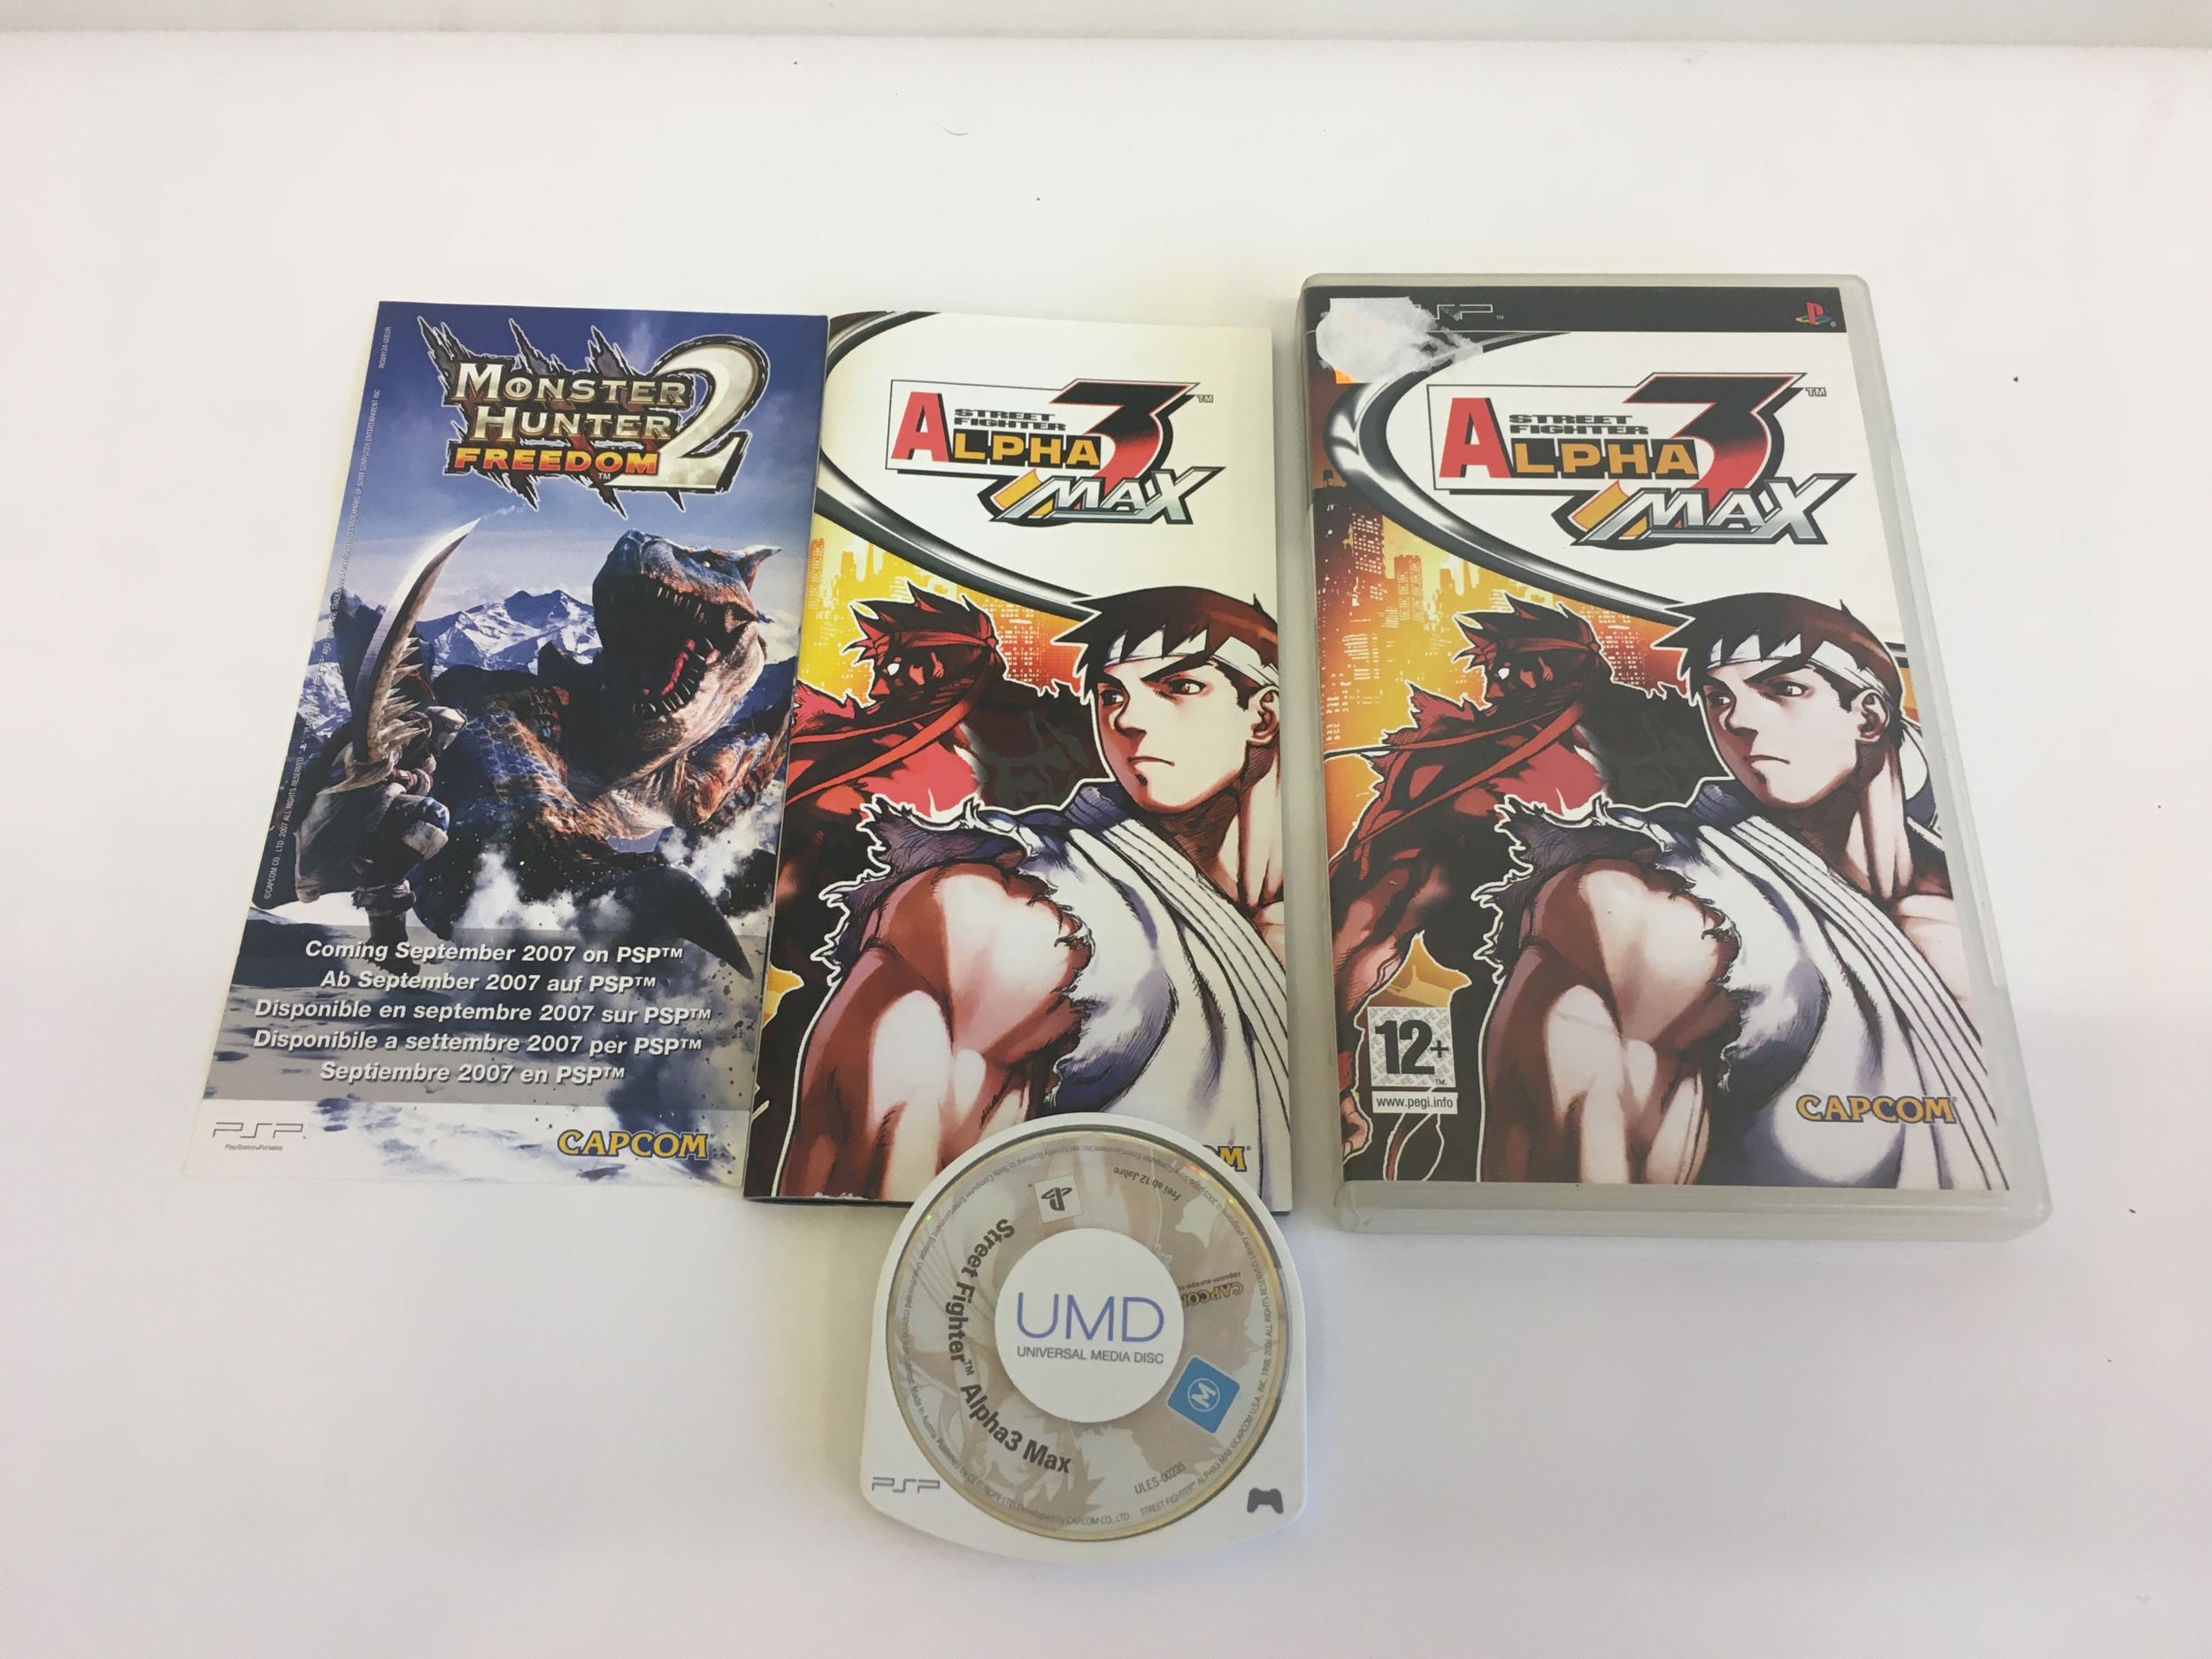 Street Fighter Alpha 3 Max PSP